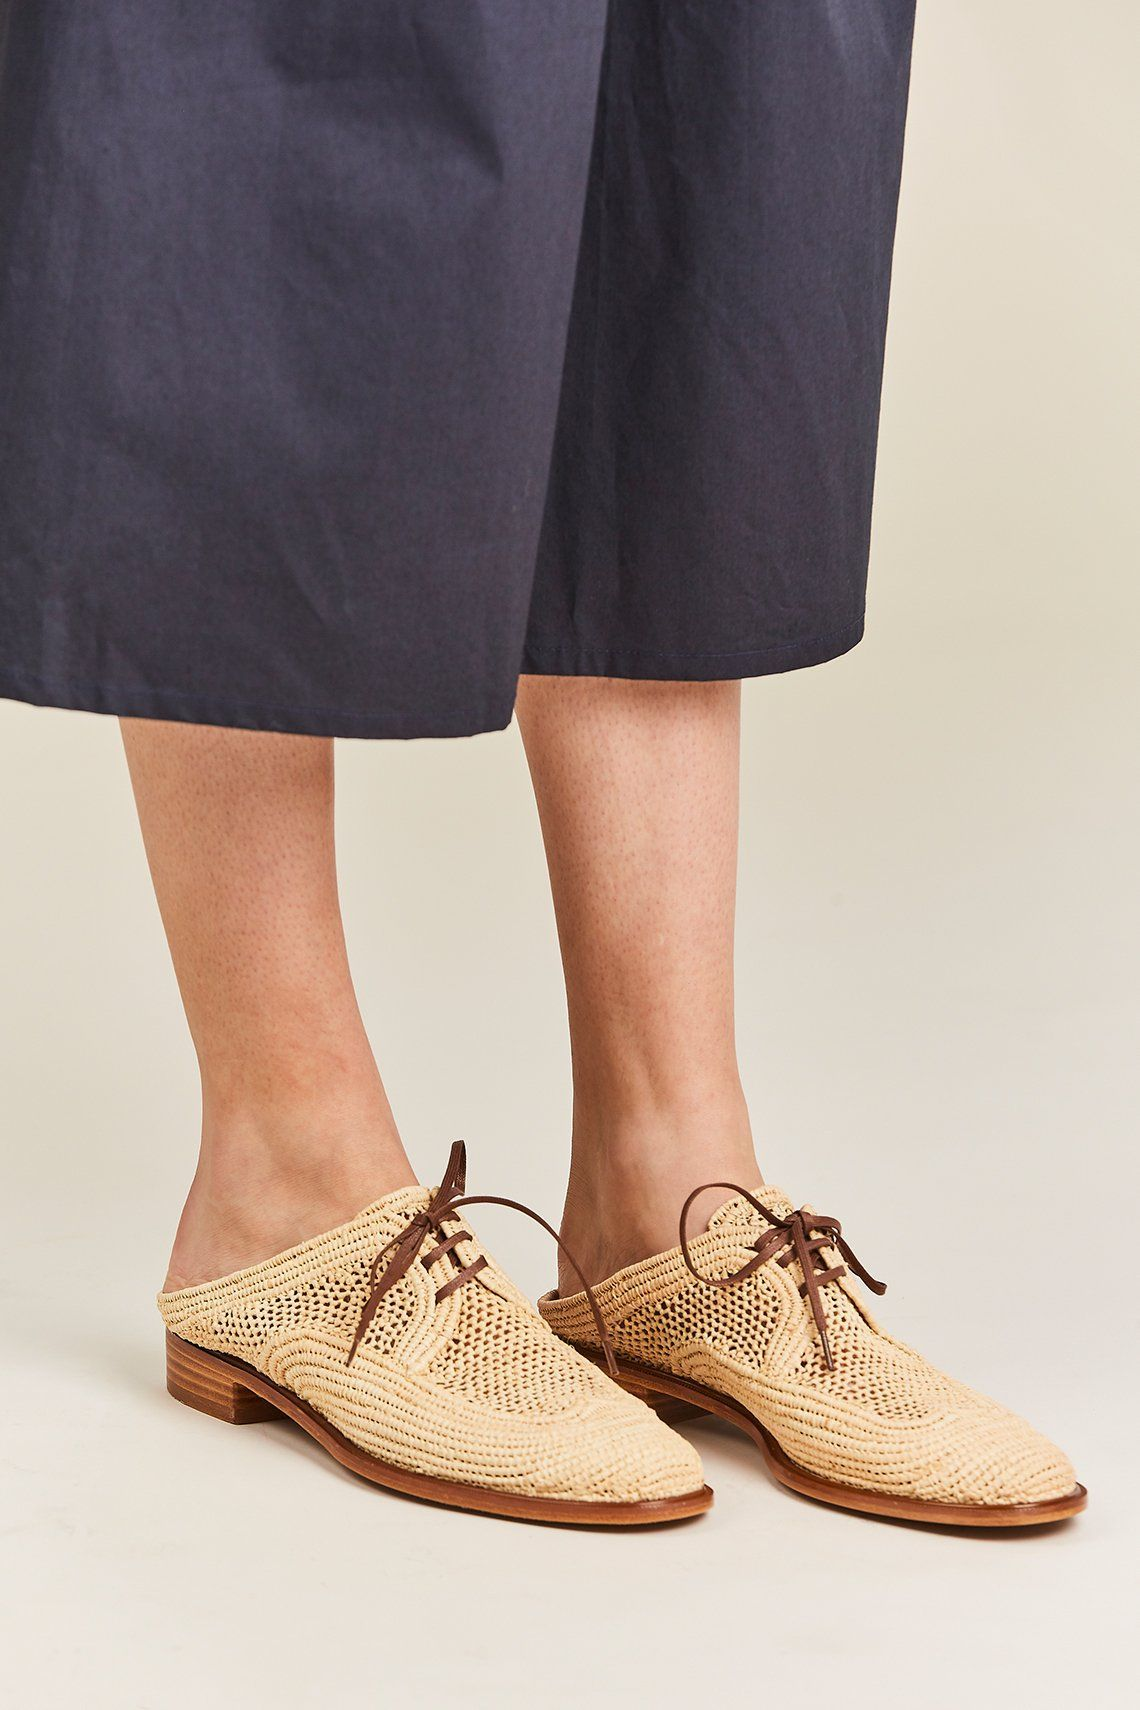 f20c52d091fde Hand-woven natural rafia mules with a oxford inspired silhouette. Round  toe